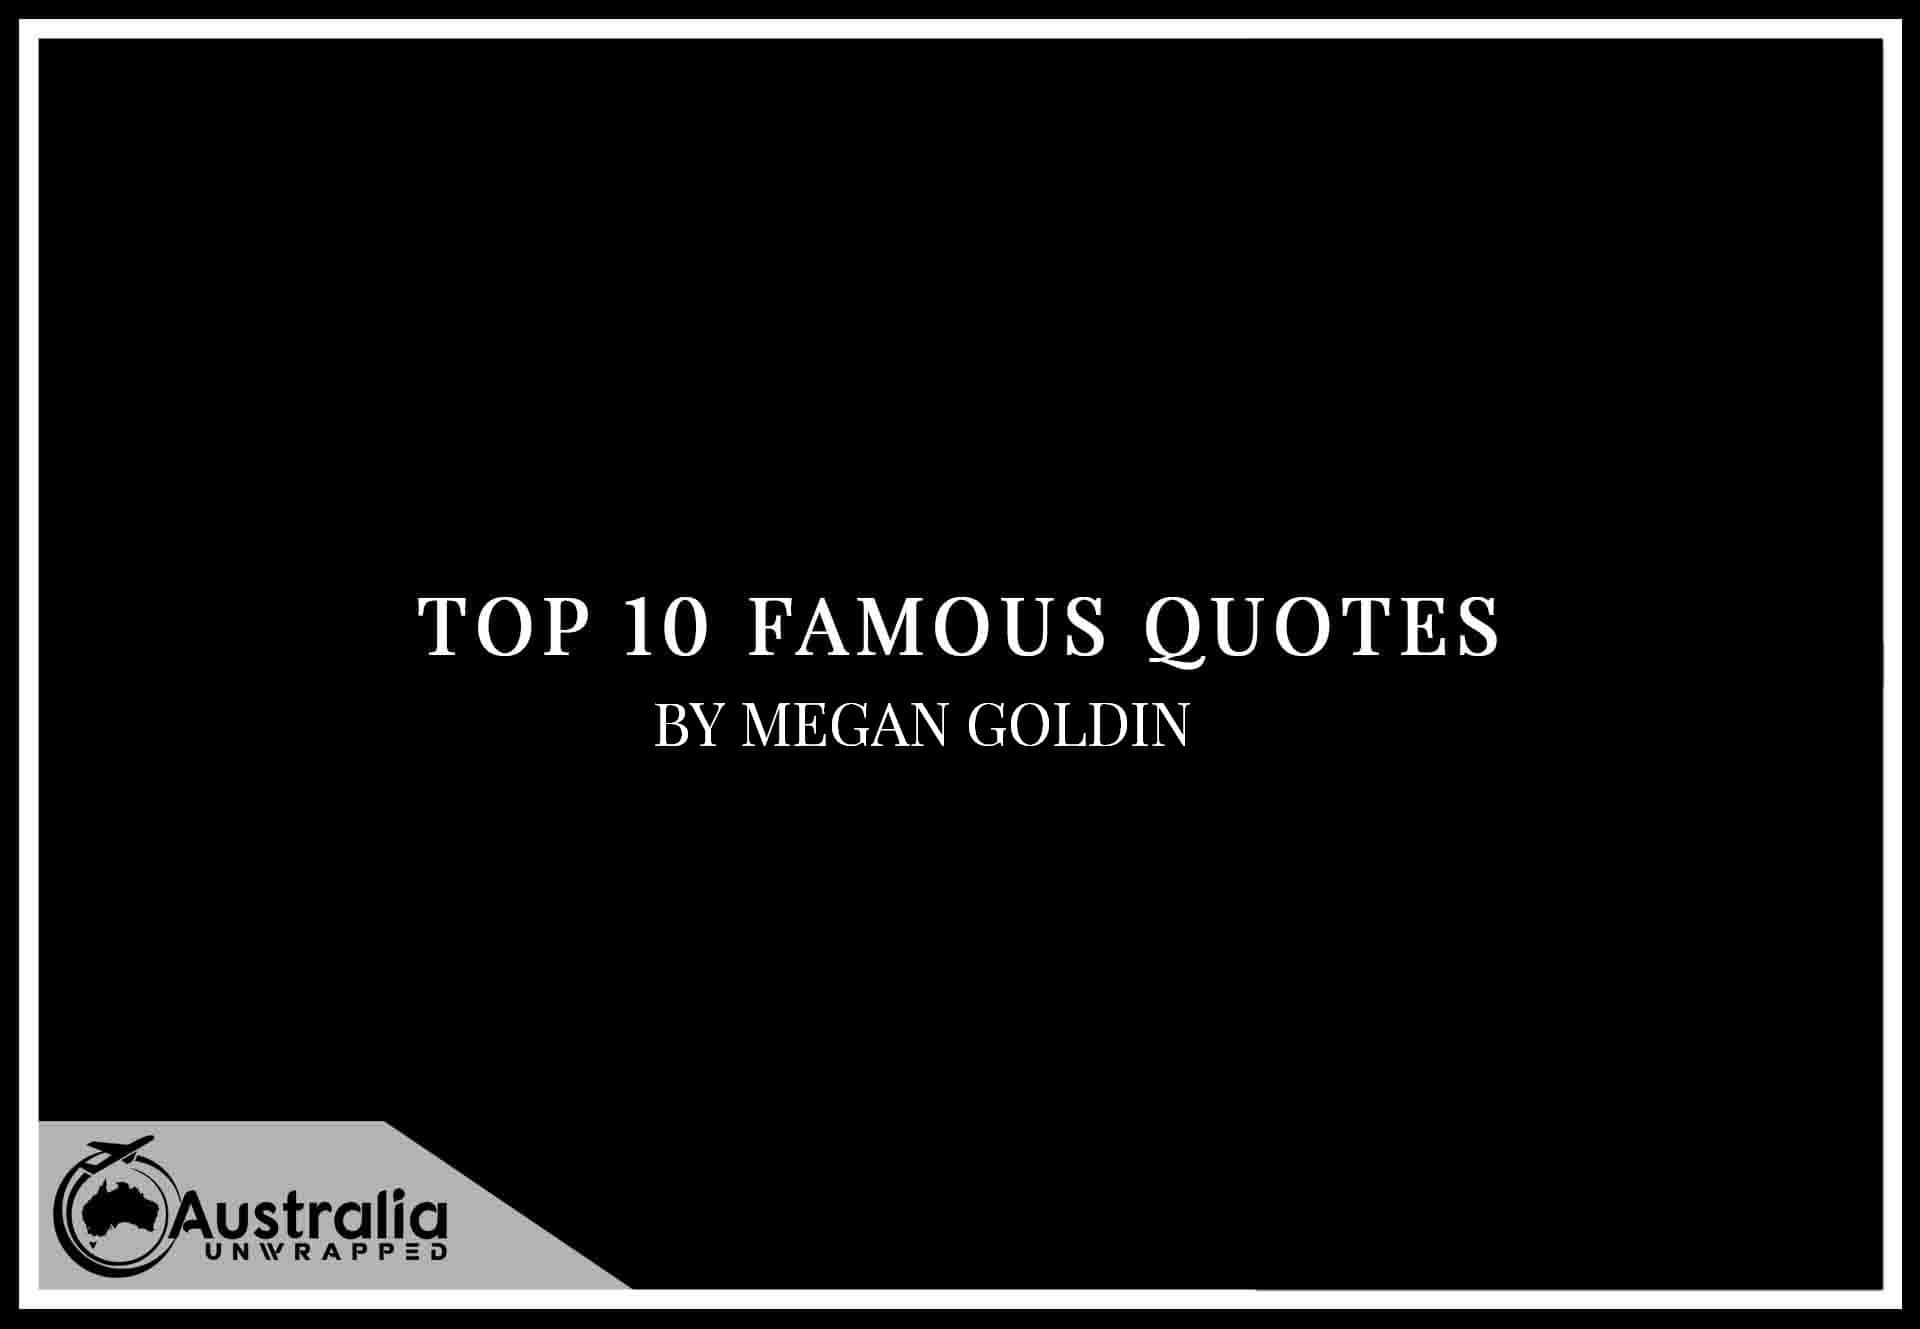 Top 10 Famous Quotes by Author Megan Goldin